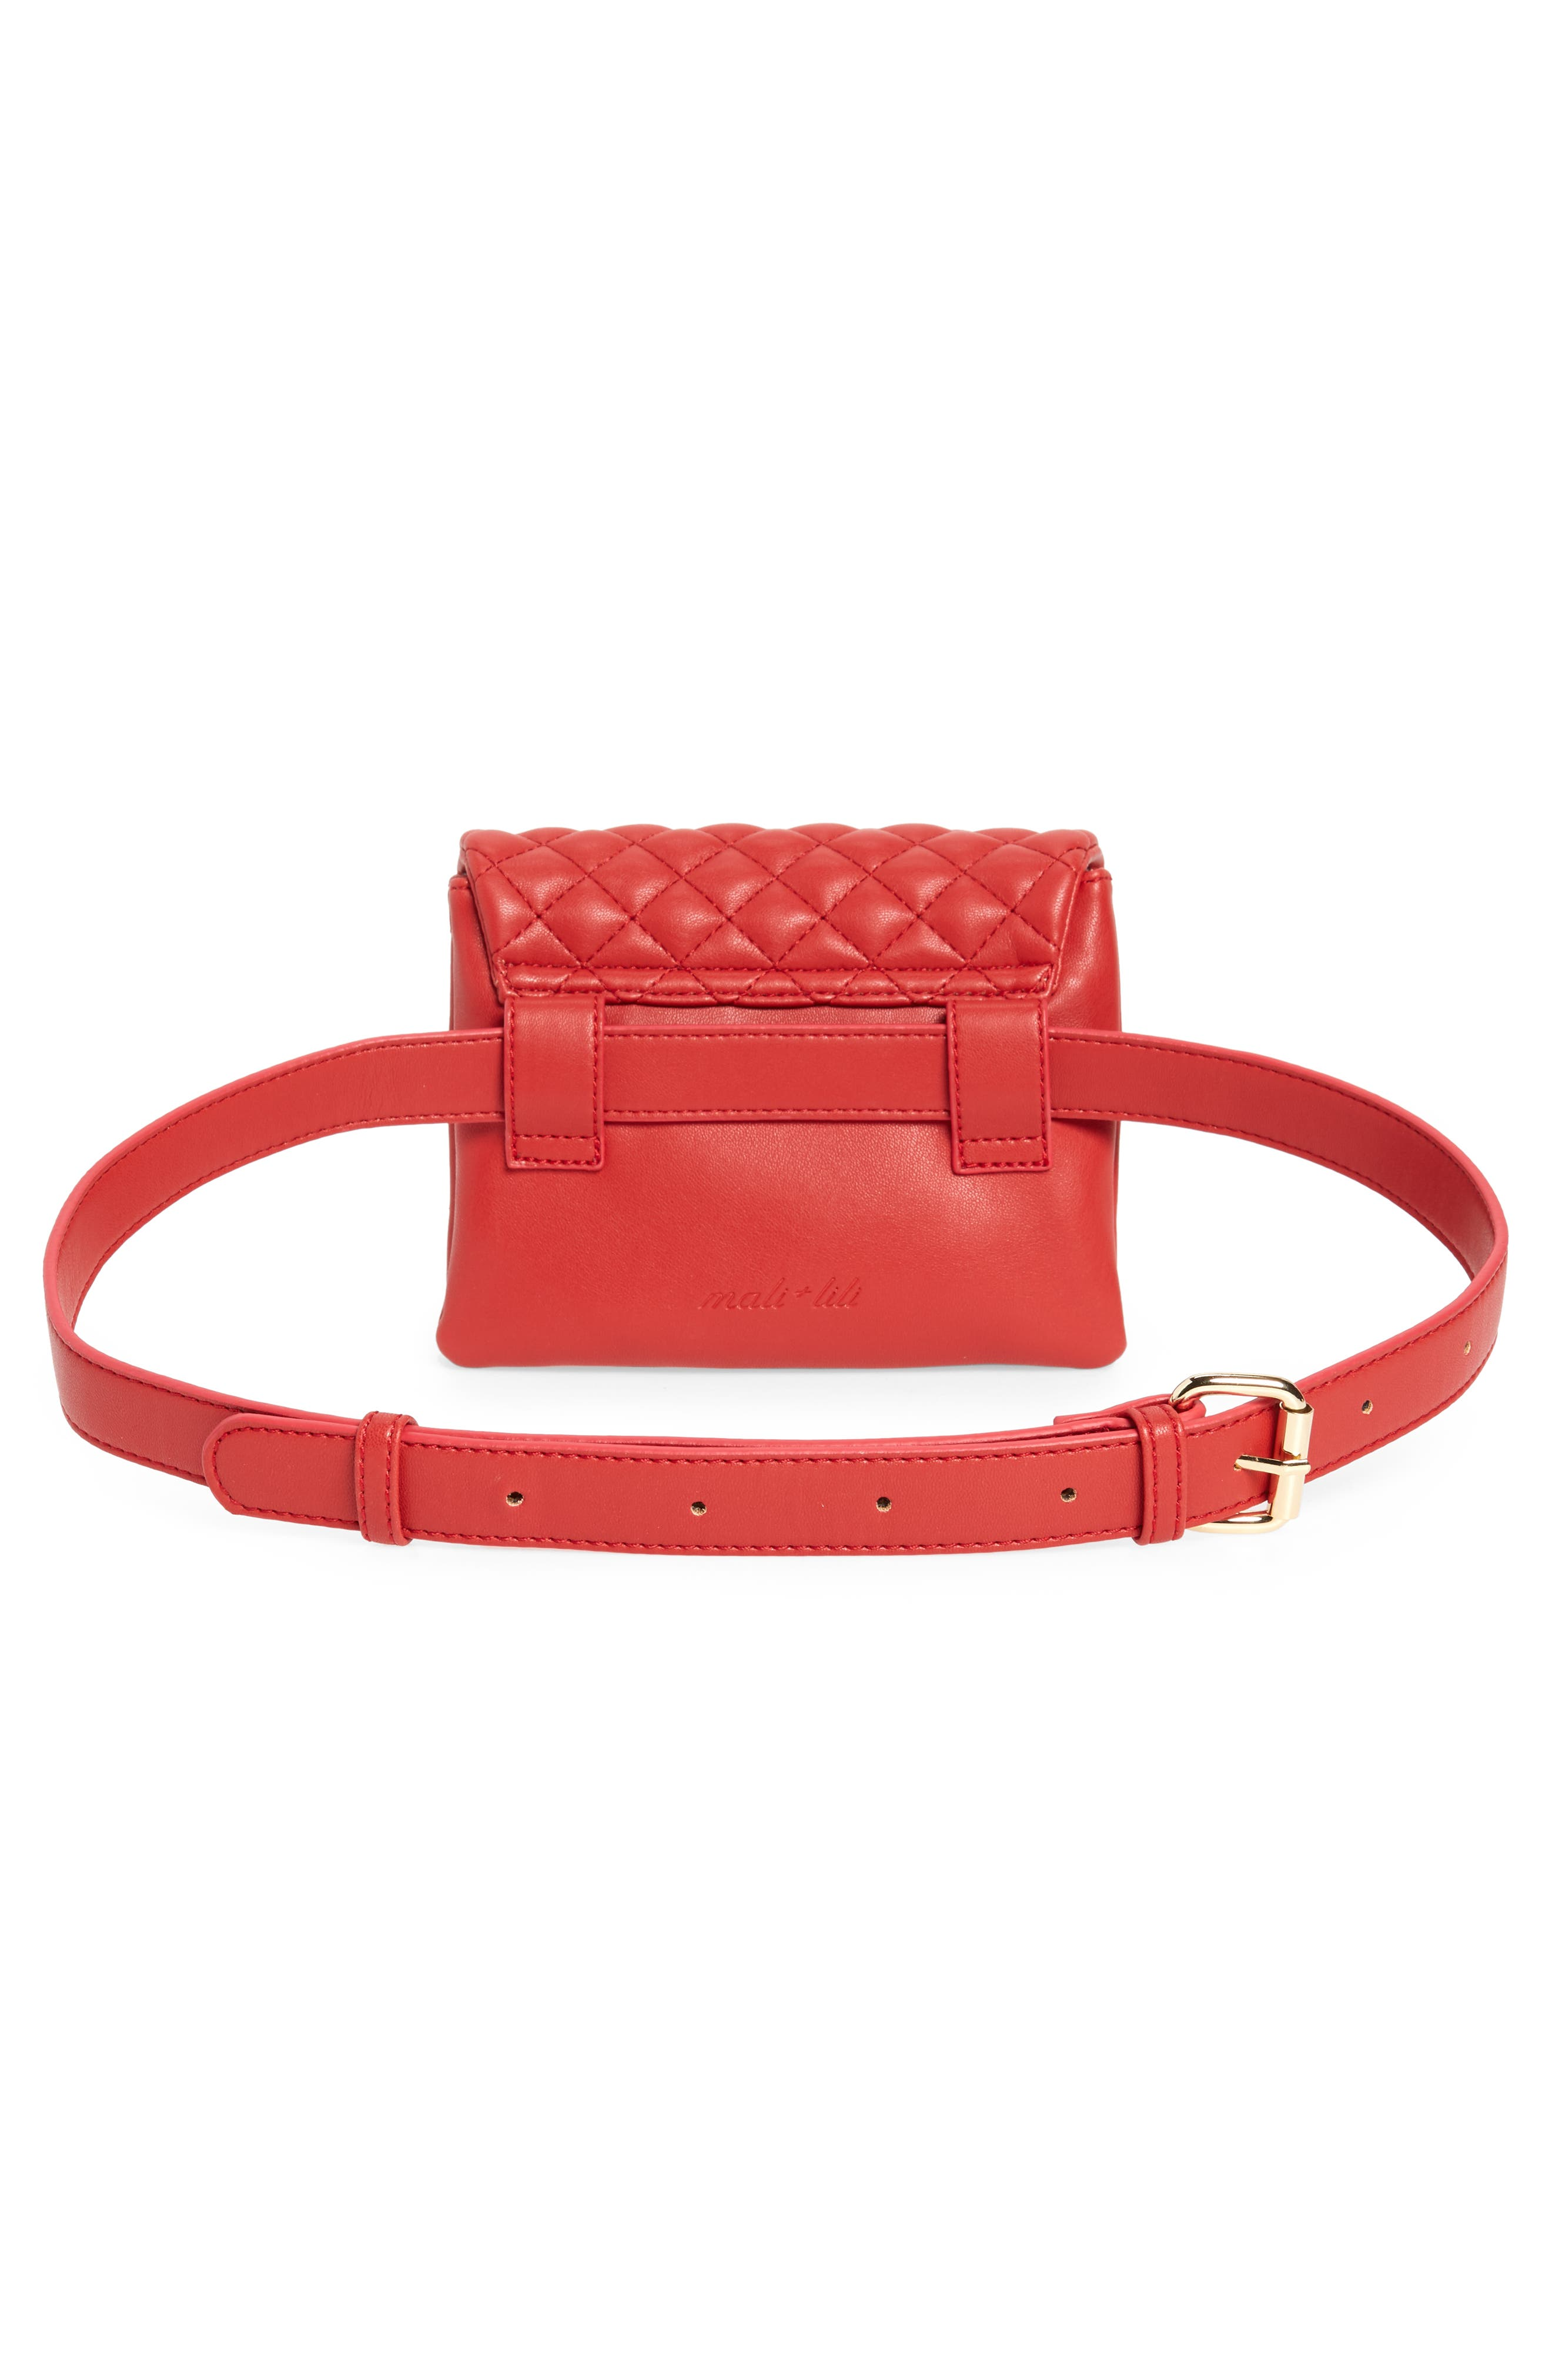 Mali + Lili Quilted Vegan Leather Convertible Belt Bag,                             Alternate thumbnail 6, color,                             Red